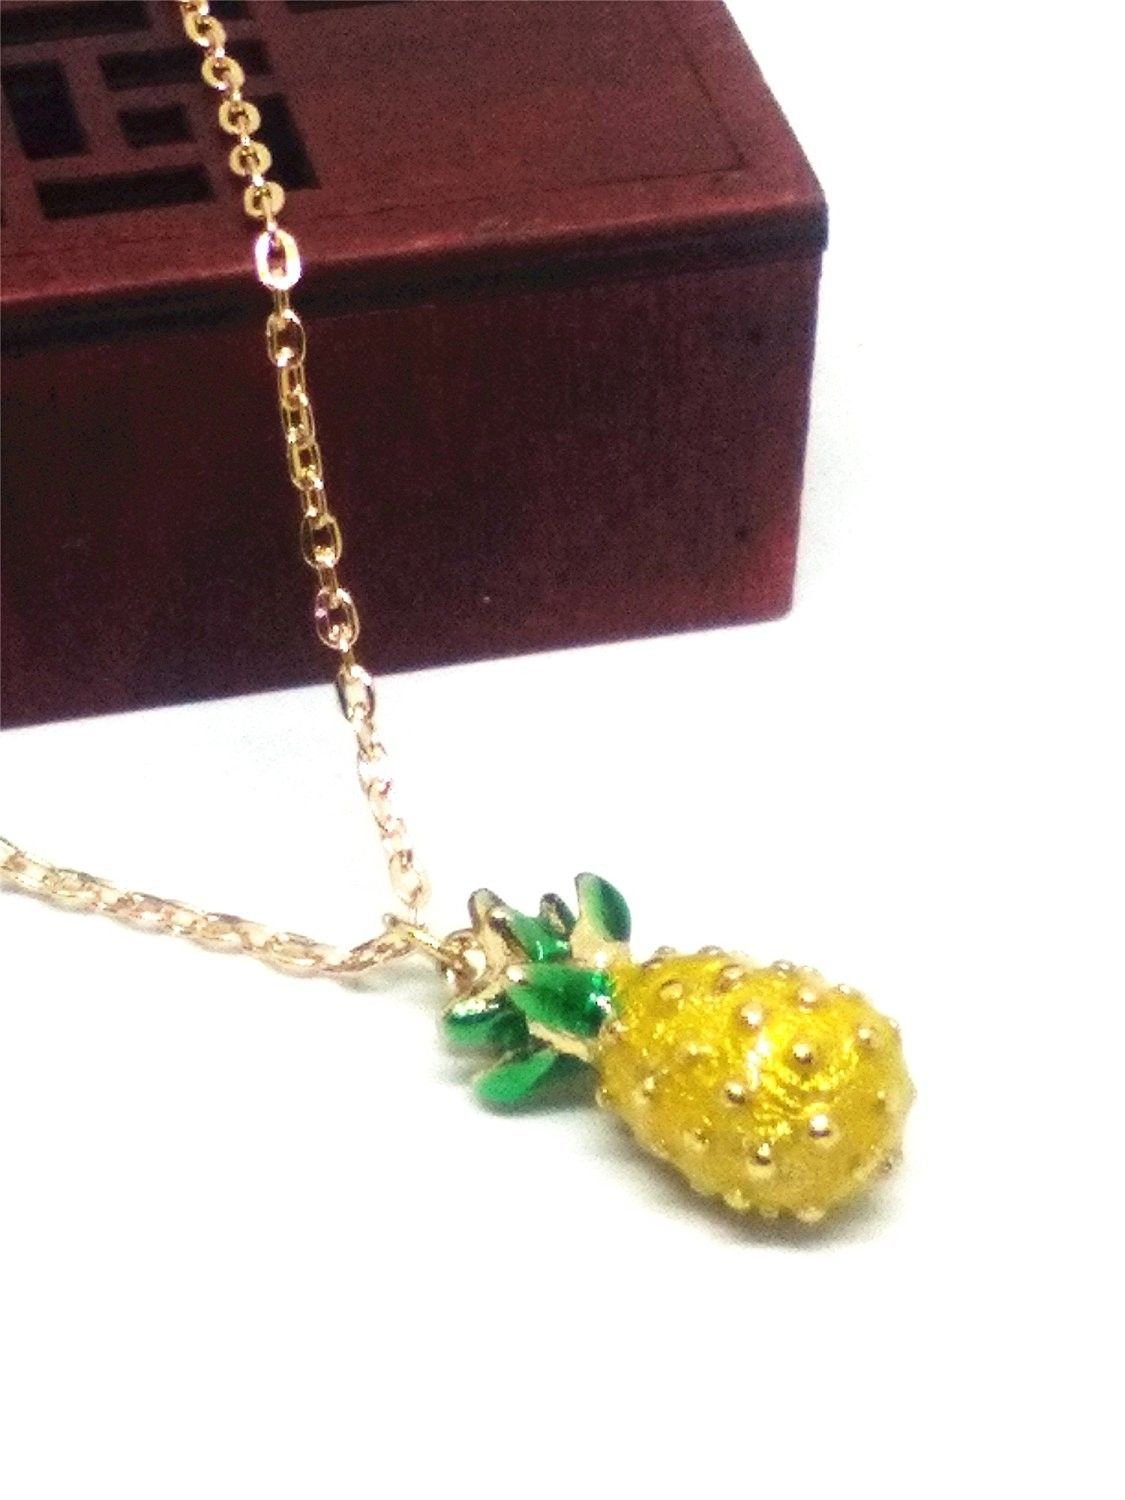 Vintage pineapple pendant long chain necklace cbytig